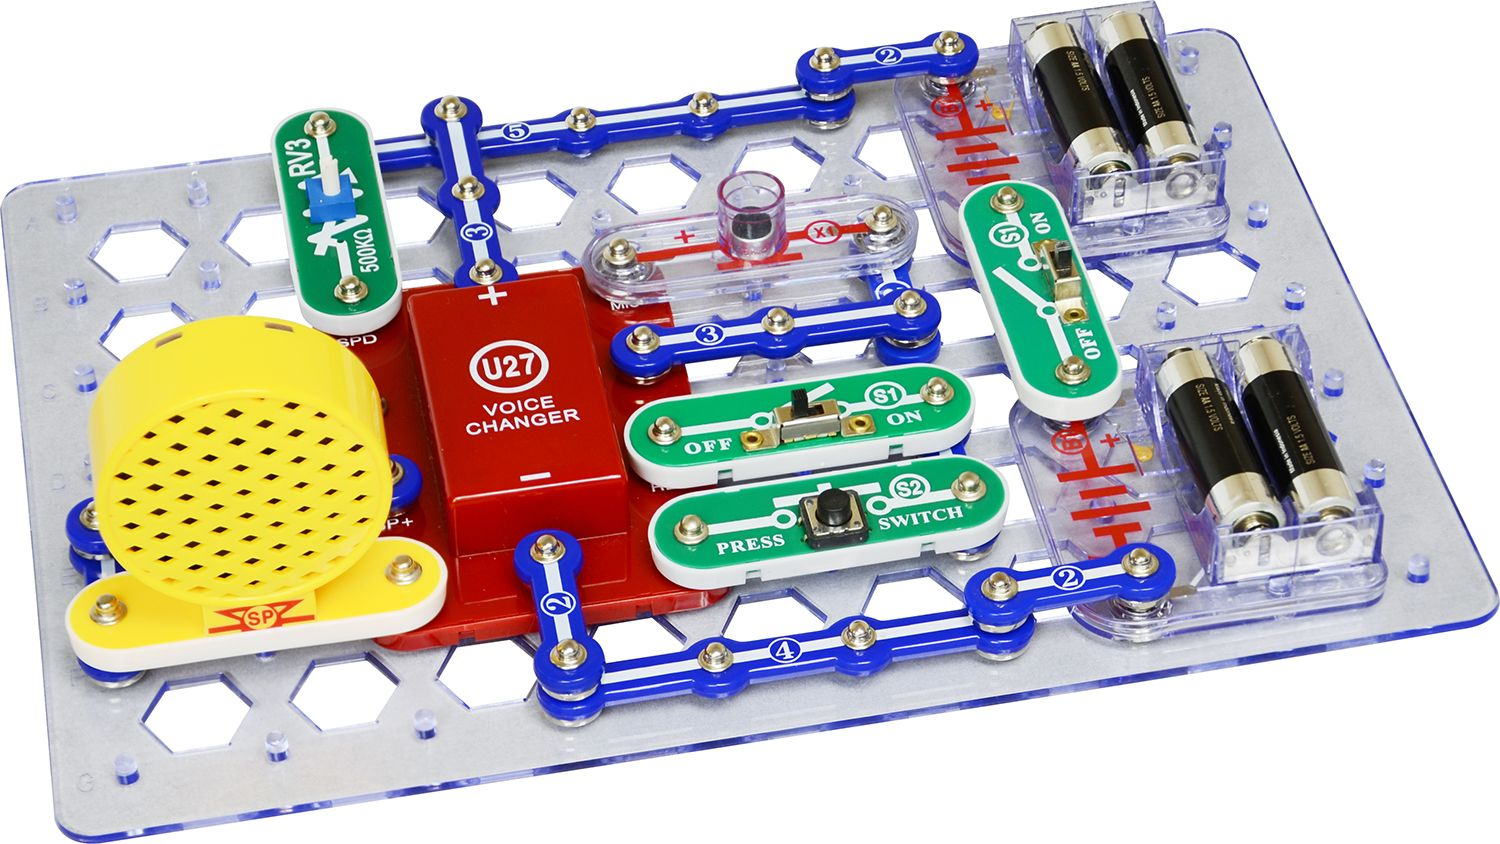 snap circuits extreme 750in1 kit w computer interface robotshop